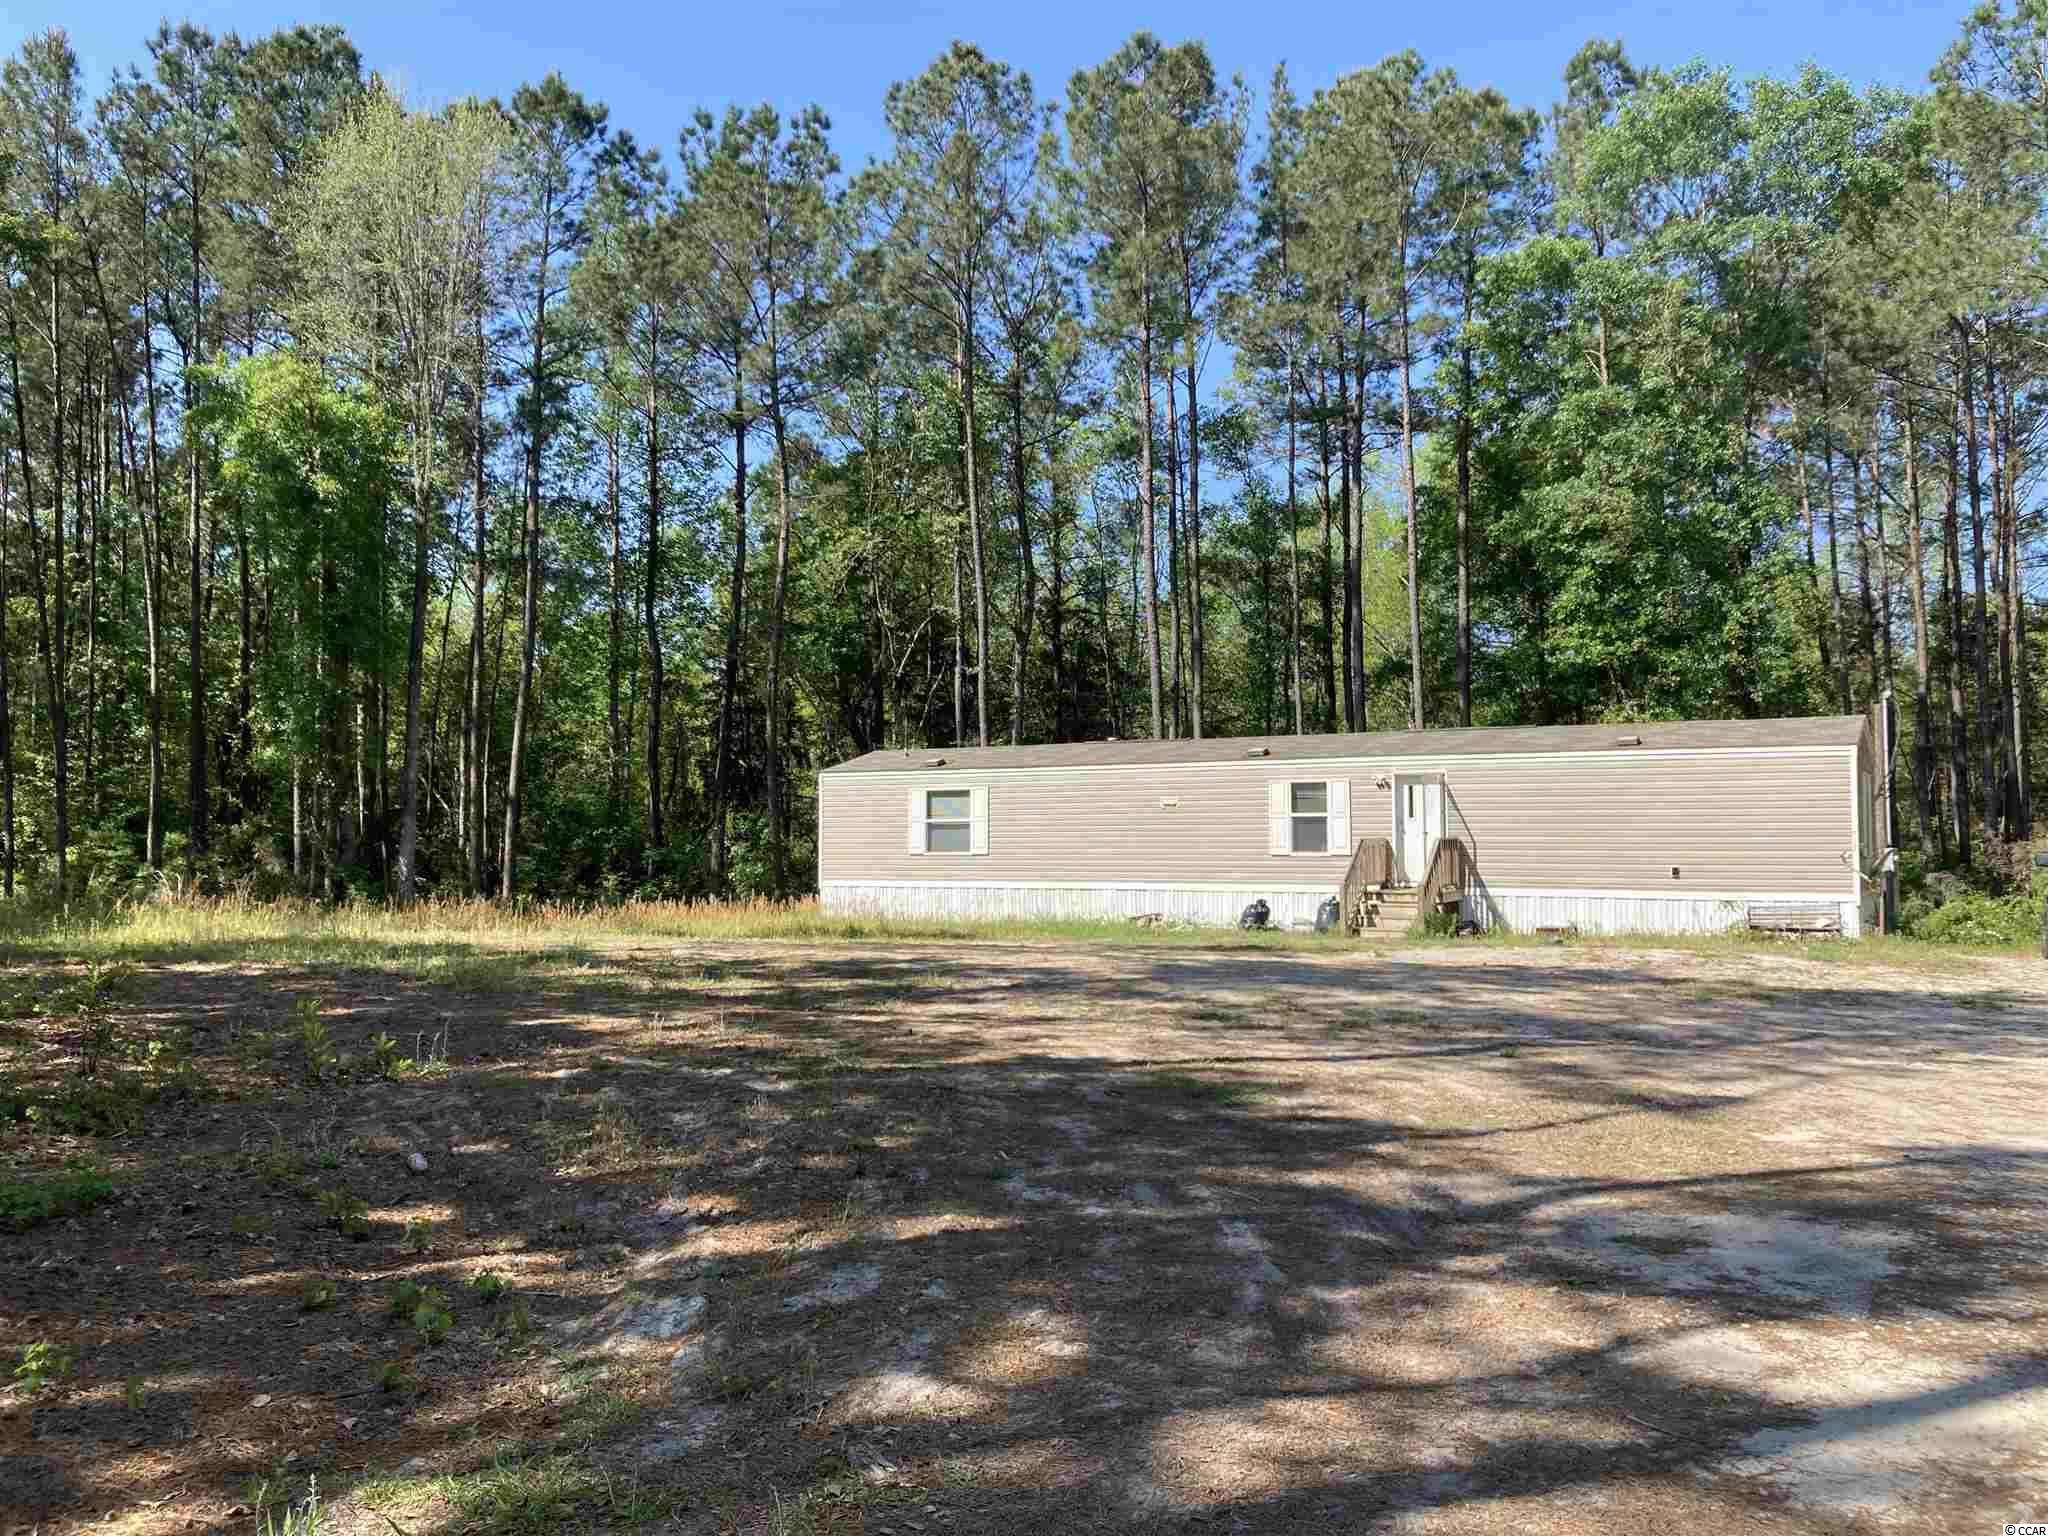 Very rare opportunity to own over 10 acres, a 4,500 square foot metal building and a singlewide all on one property. This property has so much to offer you have to see it in person to appreciate it. Outside the city limits but not too far. Only a very short driving distance to Myrtle Beach. NO RESTRICTIONS OR HOA!! Bring all your toys. Lots of room to play and then some. Call today!